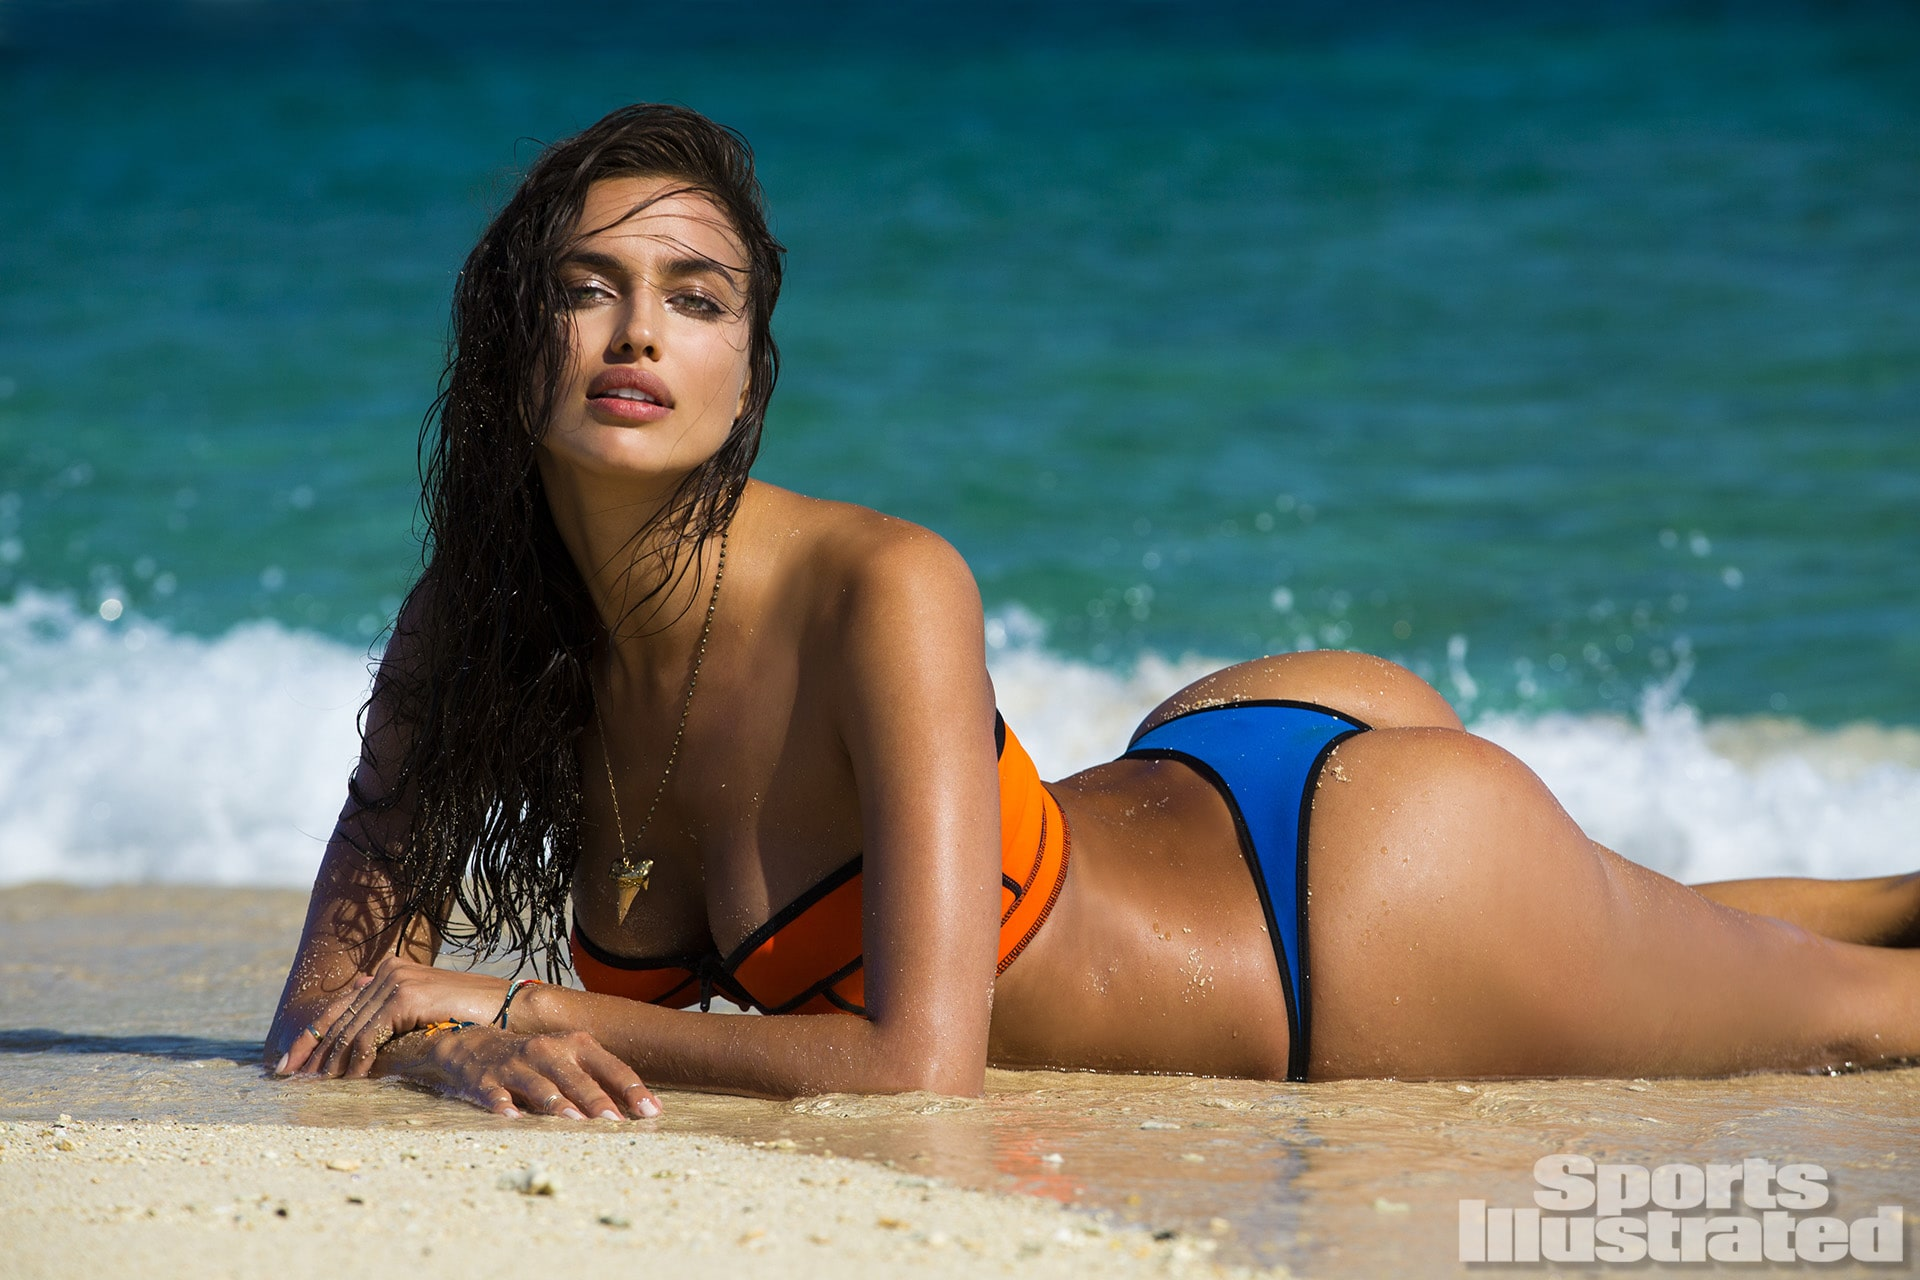 Irina Shayk hot photo